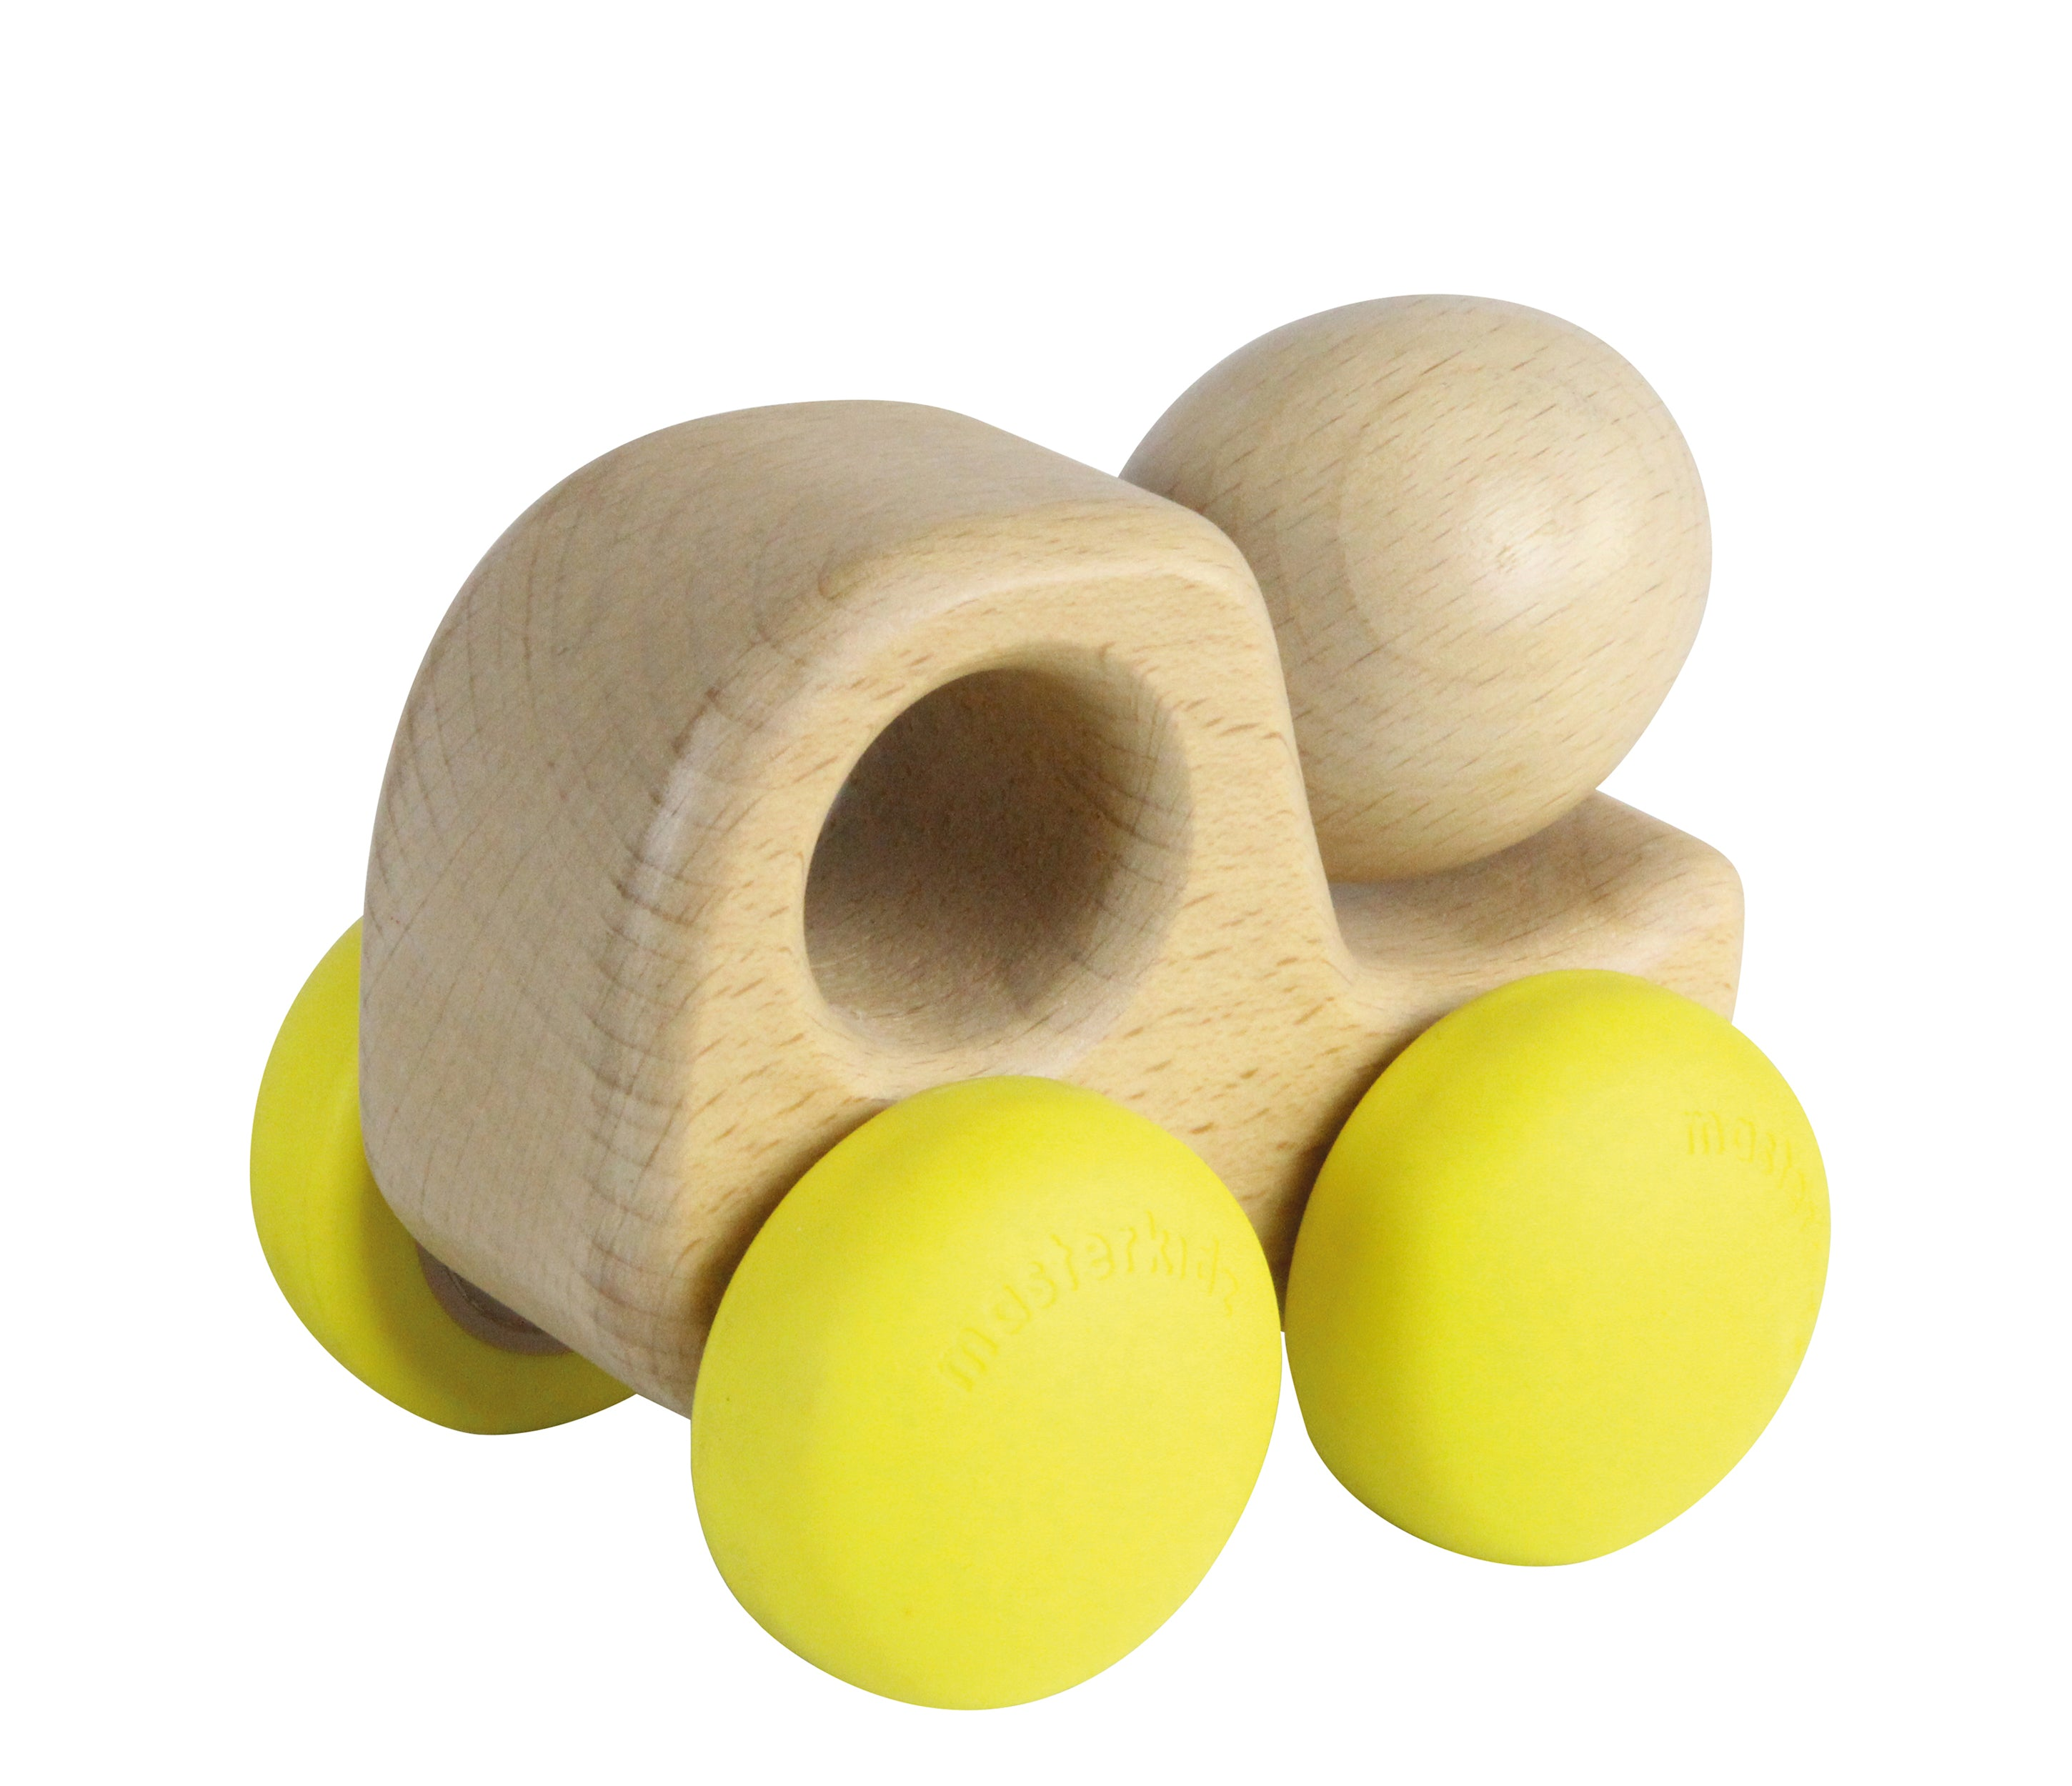 Chunky Wooden Cement Mixer Toy